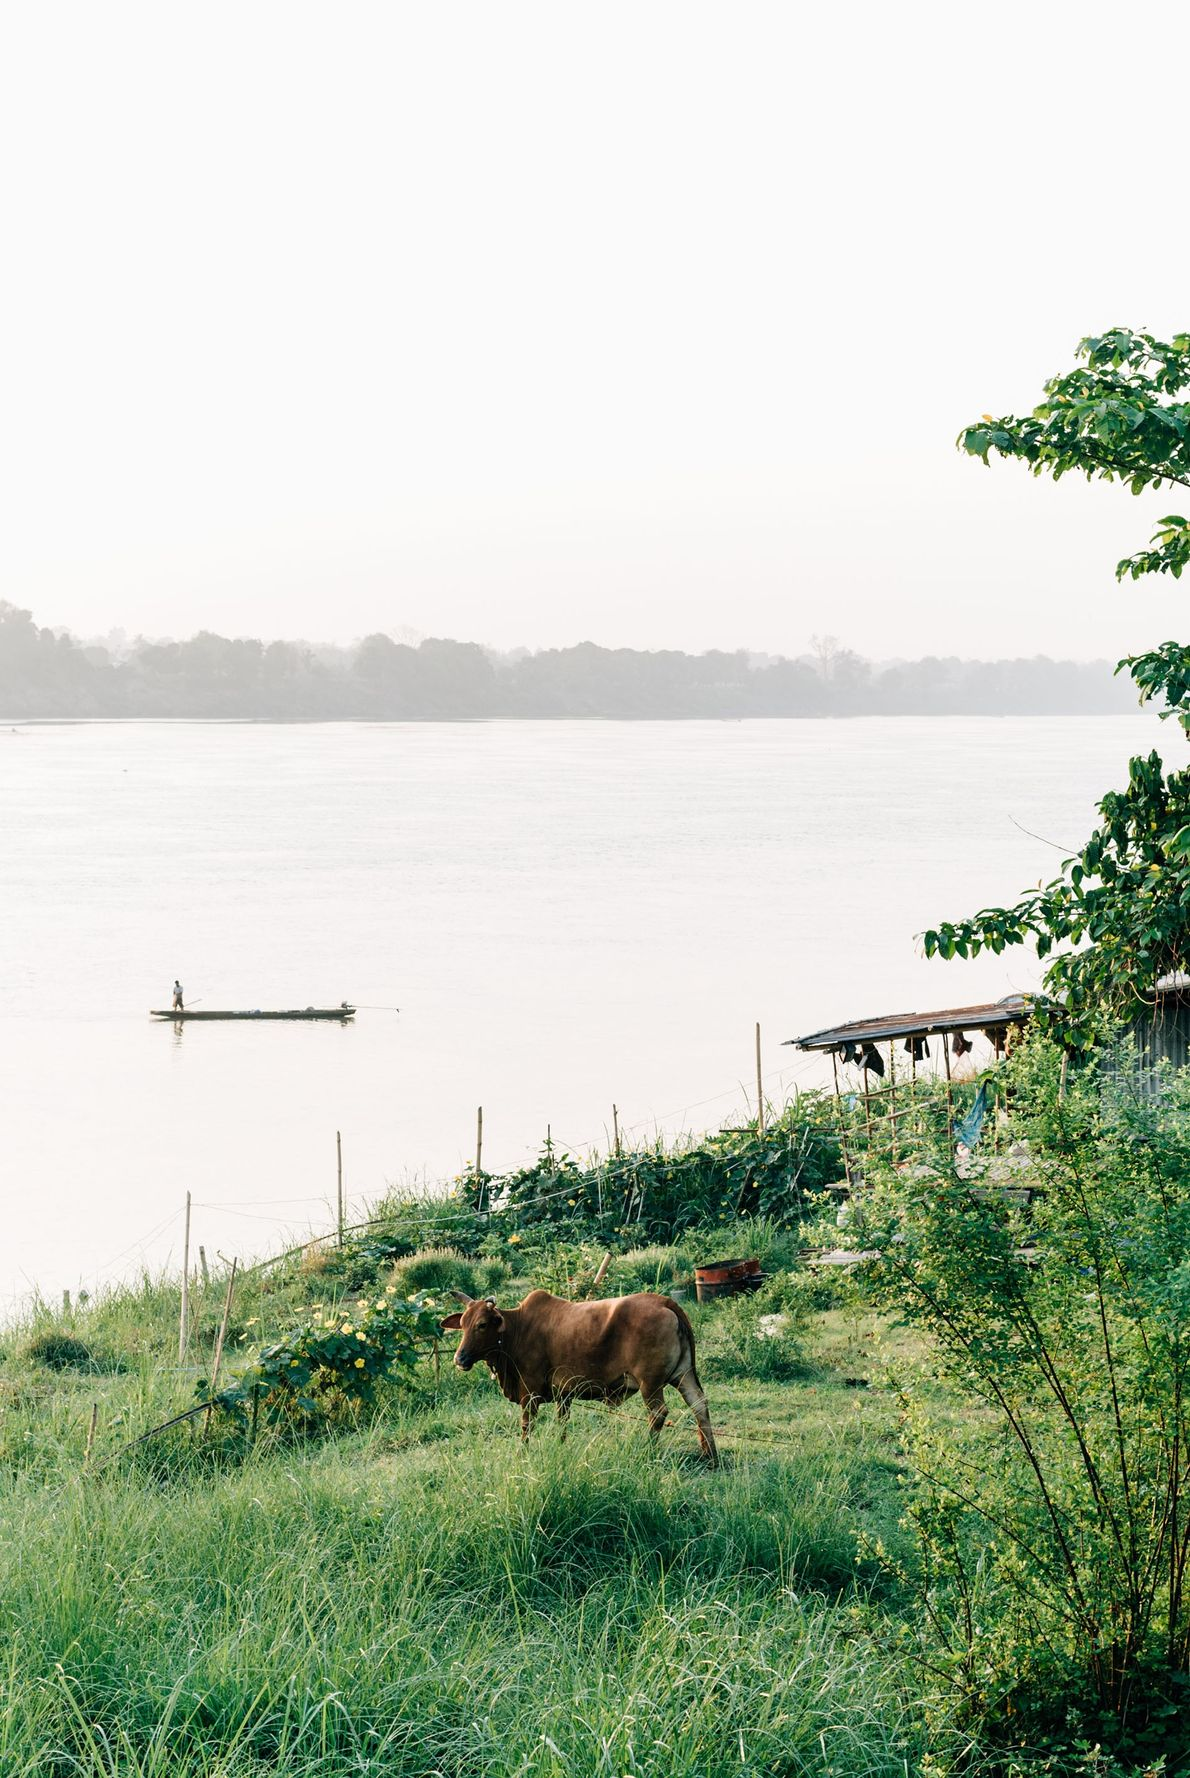 A smallholding on the banks of the Mekong close to Nakhon Phanom